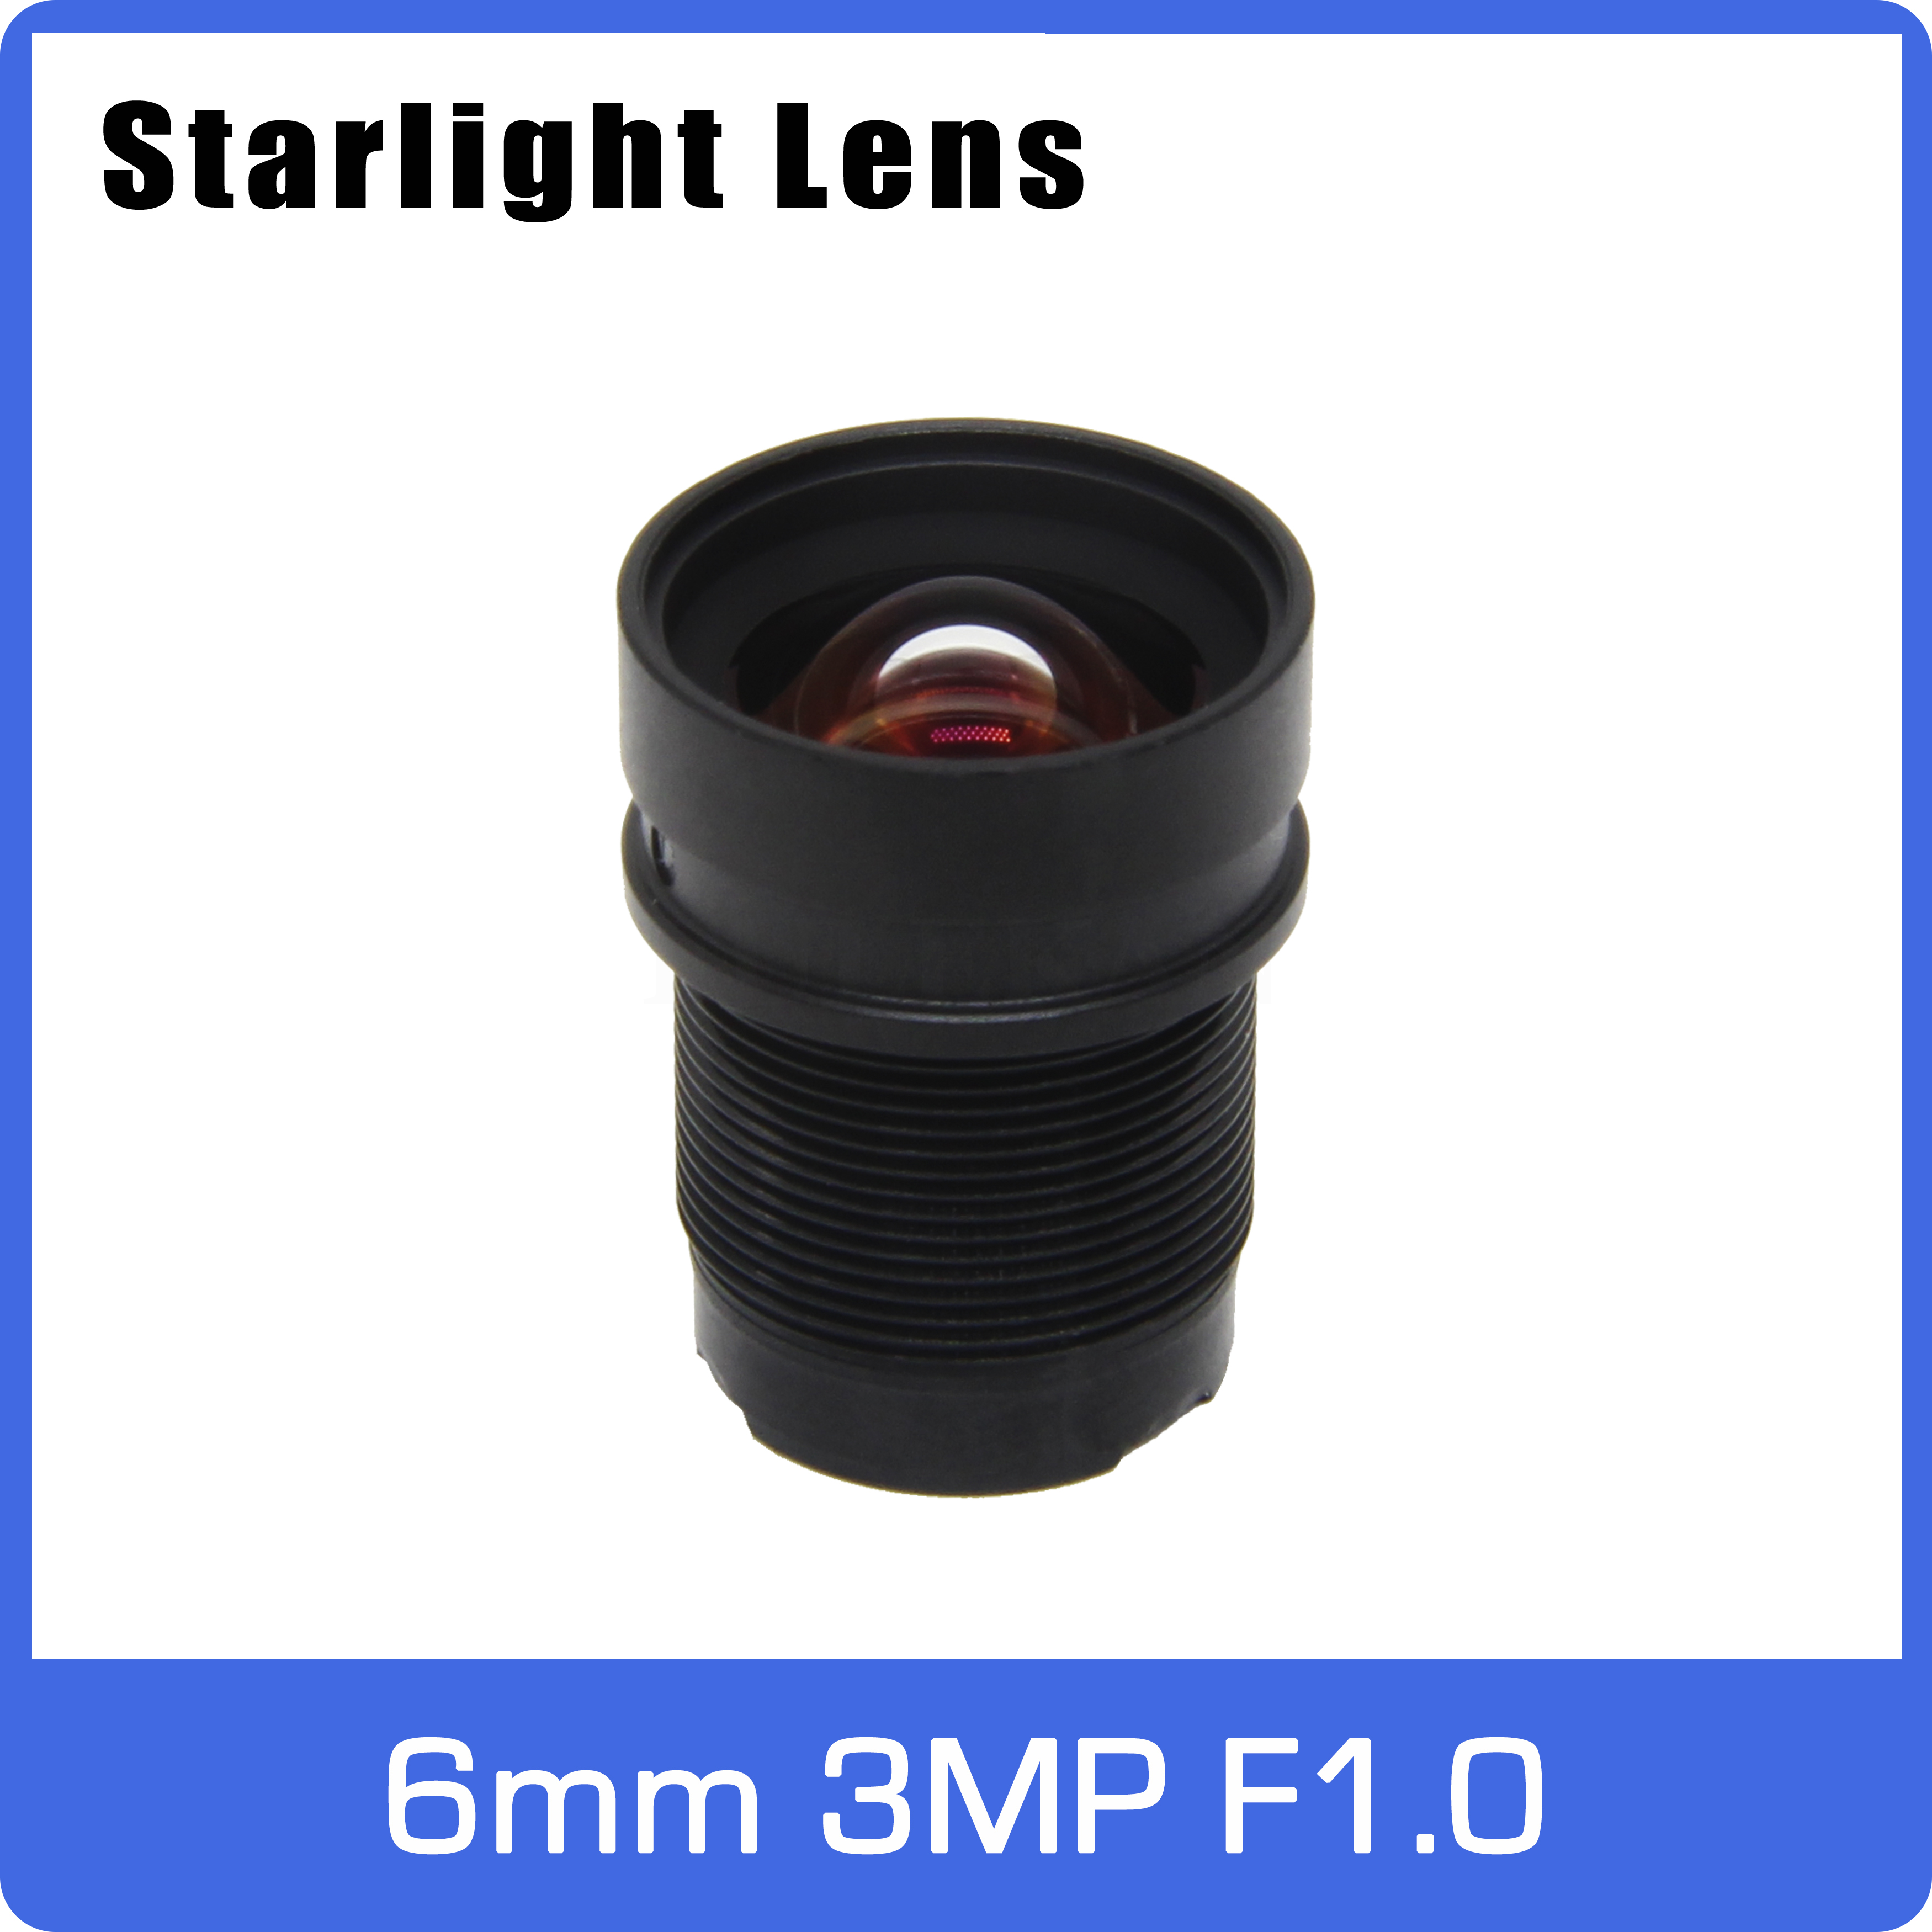 Super Starlight Lens Aperture F1.0 3MP 6mm For SONY IMX290/291/307/327 Ultra Low Light  AHD IP Camera Free Shipping